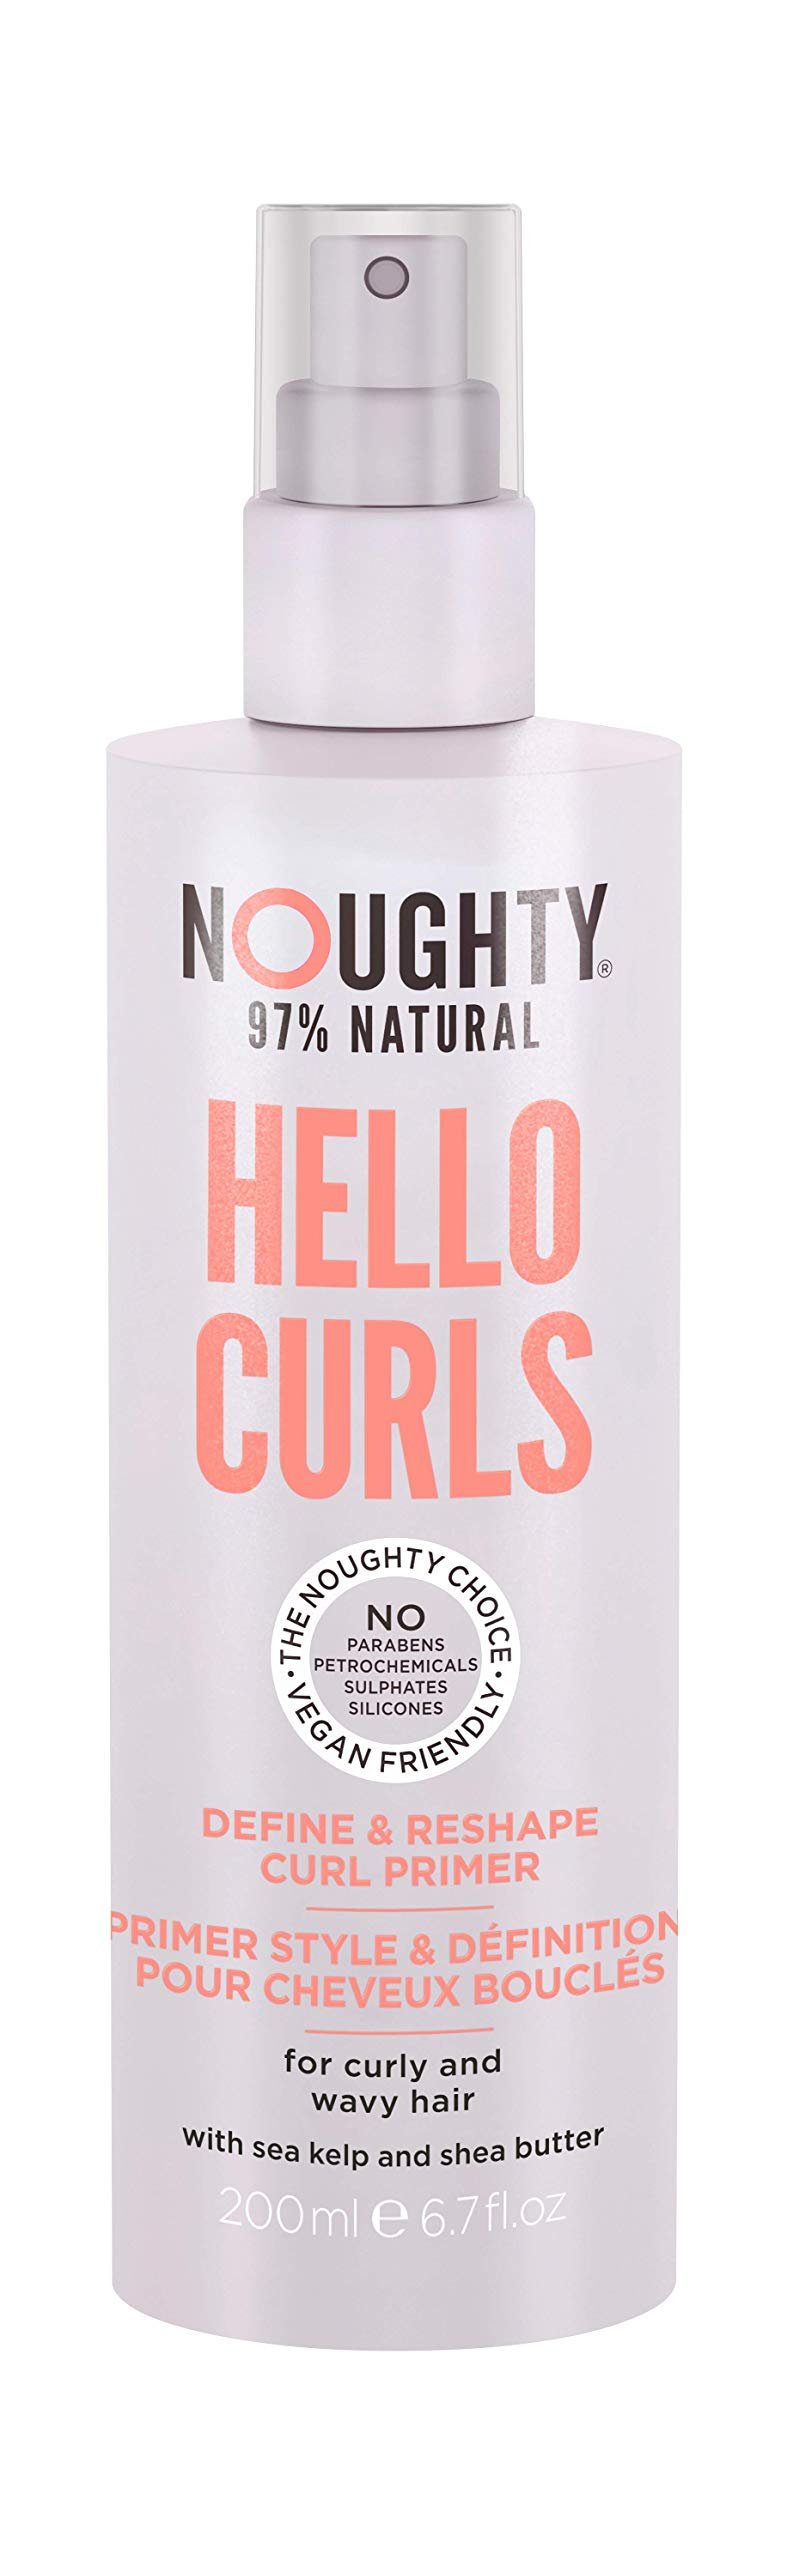 Noughty Haircare Hello Curls Define and Reshape Primer, NOUWV2329